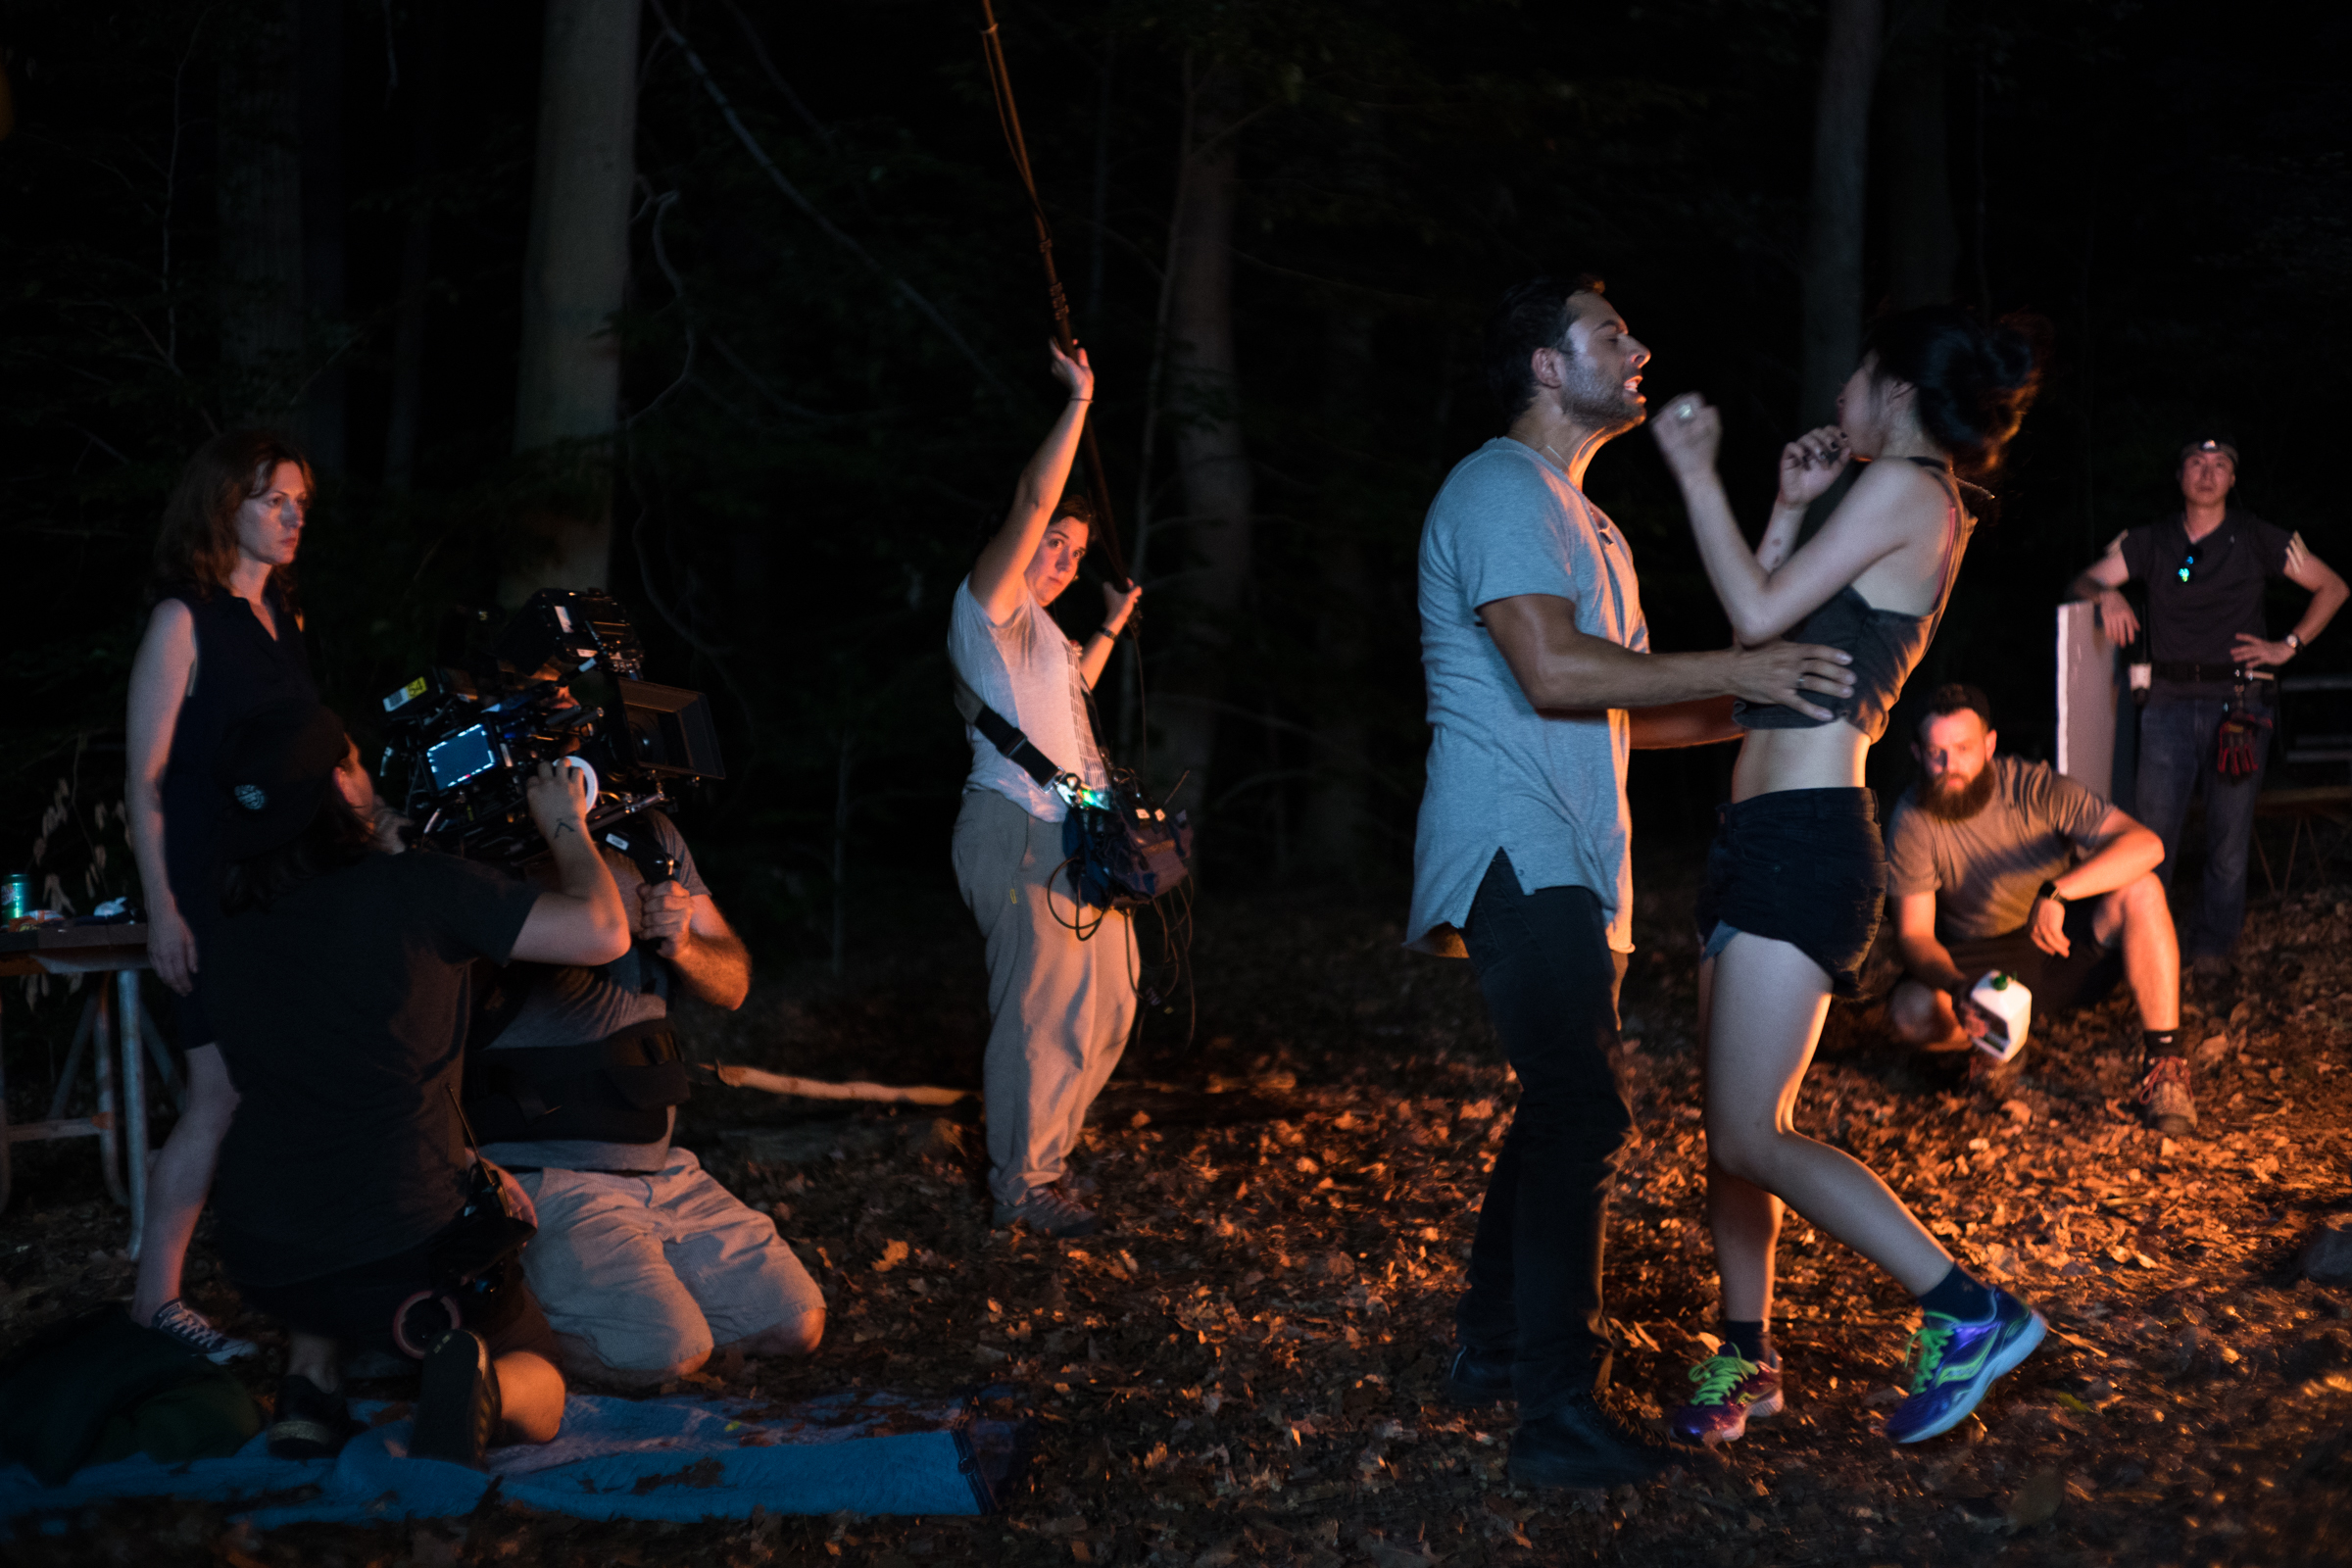 """from L to R: lead actor Marguerite Stimpson, 1st AC Griffin Yu, cinematographer Shlomo Godder, sound recordist Ines Gowland, actors Manuel Herrera and Yuka Taga, key grip Conor Stalvey (fuel for the fire in hand), and gaffer Doyle Lee during a take on the set of """"Ma""""  Sony a9"""